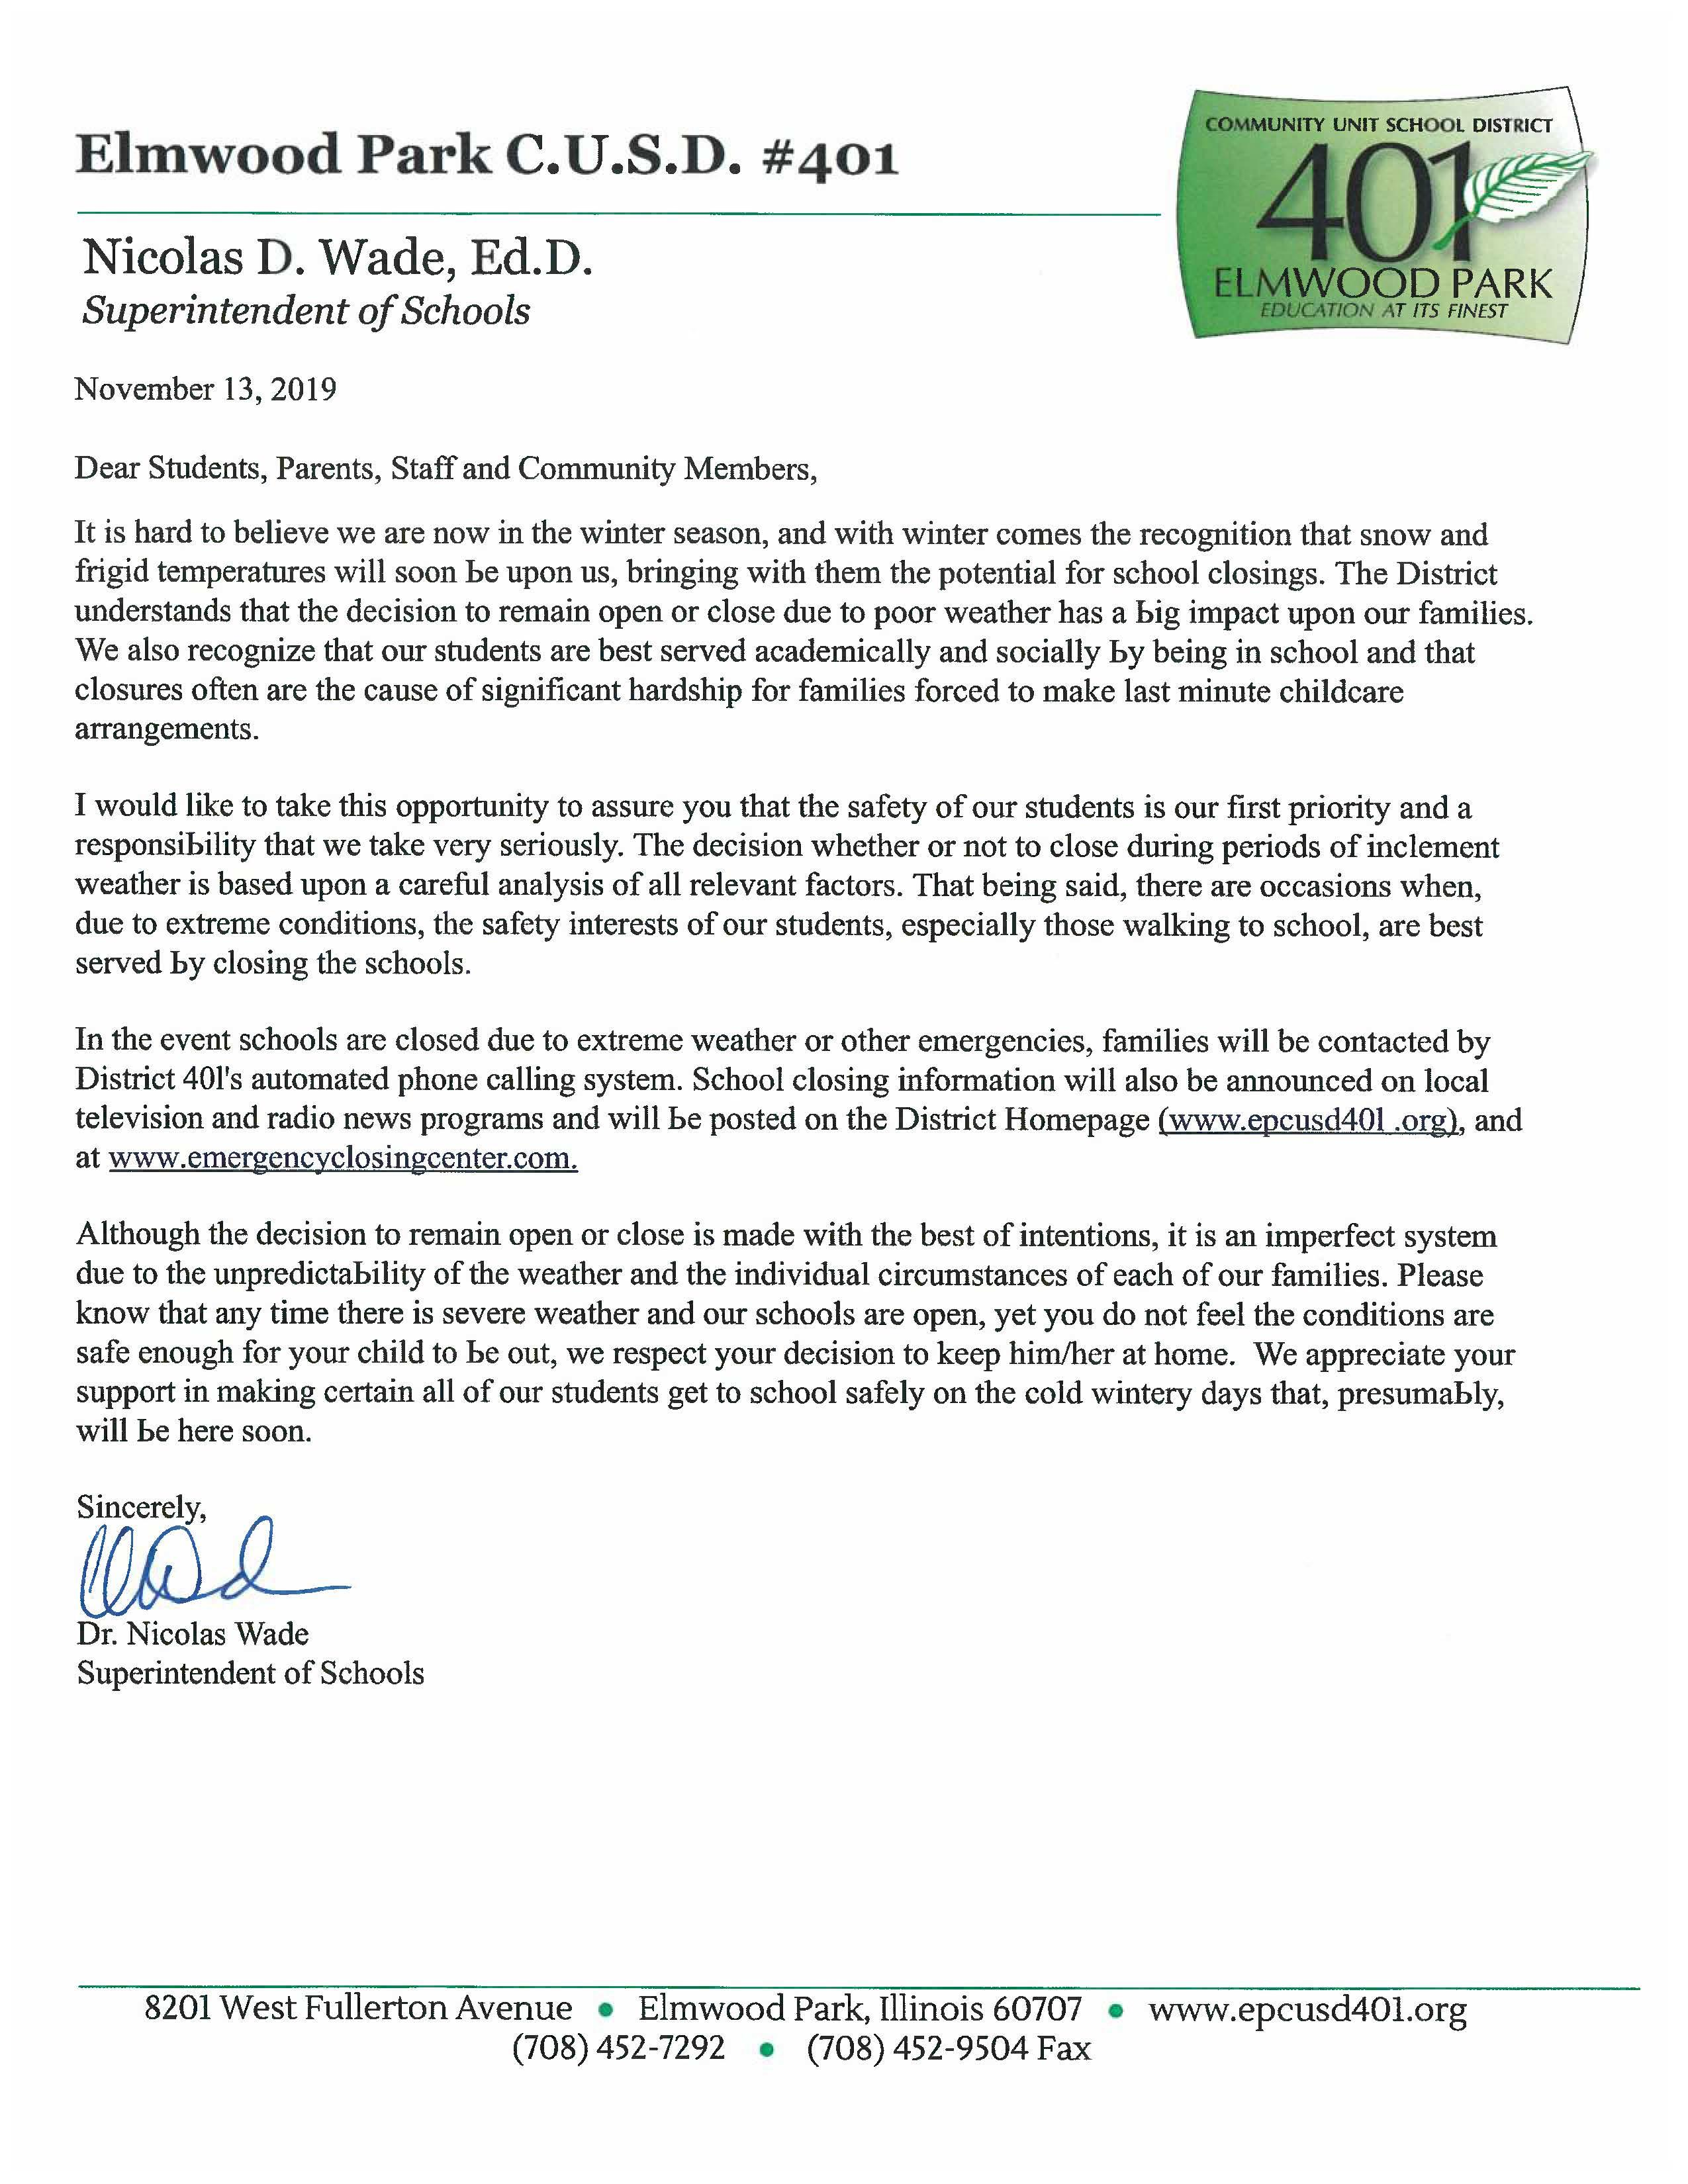 Dr. Wade's letter on winter closings, English